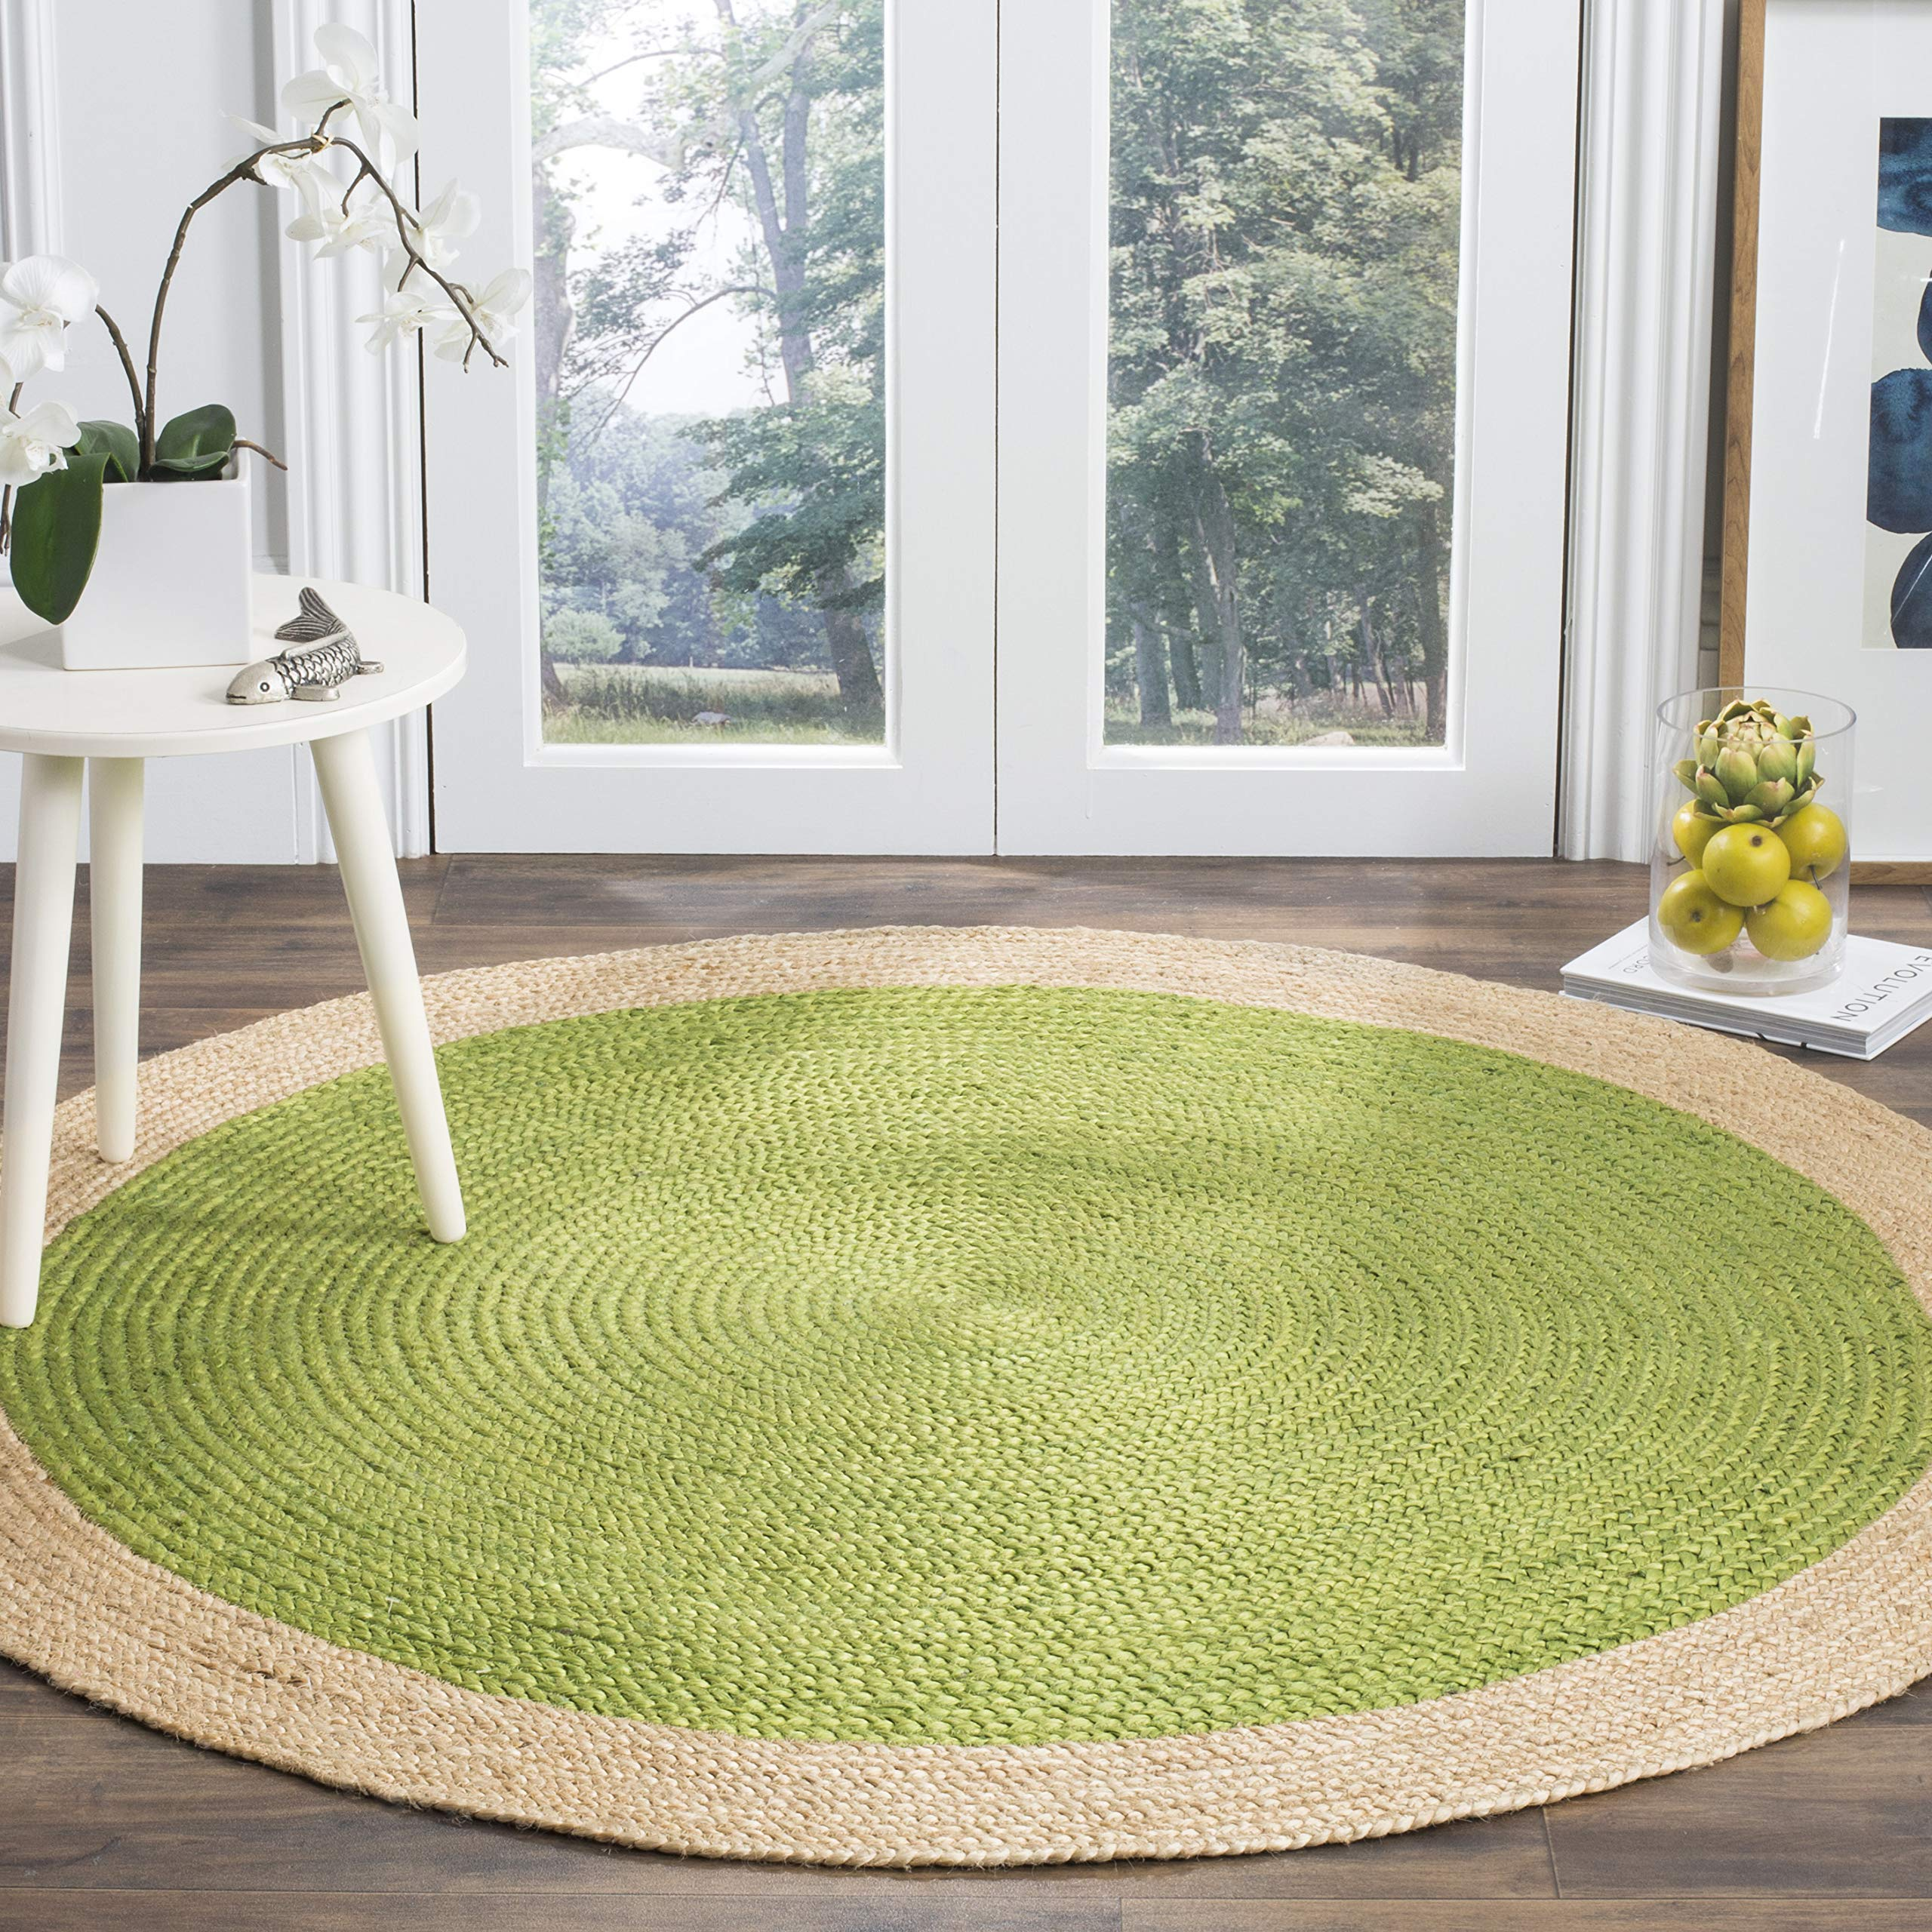 Safavieh Natural Fiber Collection NF801G Hand-Woven Green and Natural Jute Round Area Rug (4' in Diameter)